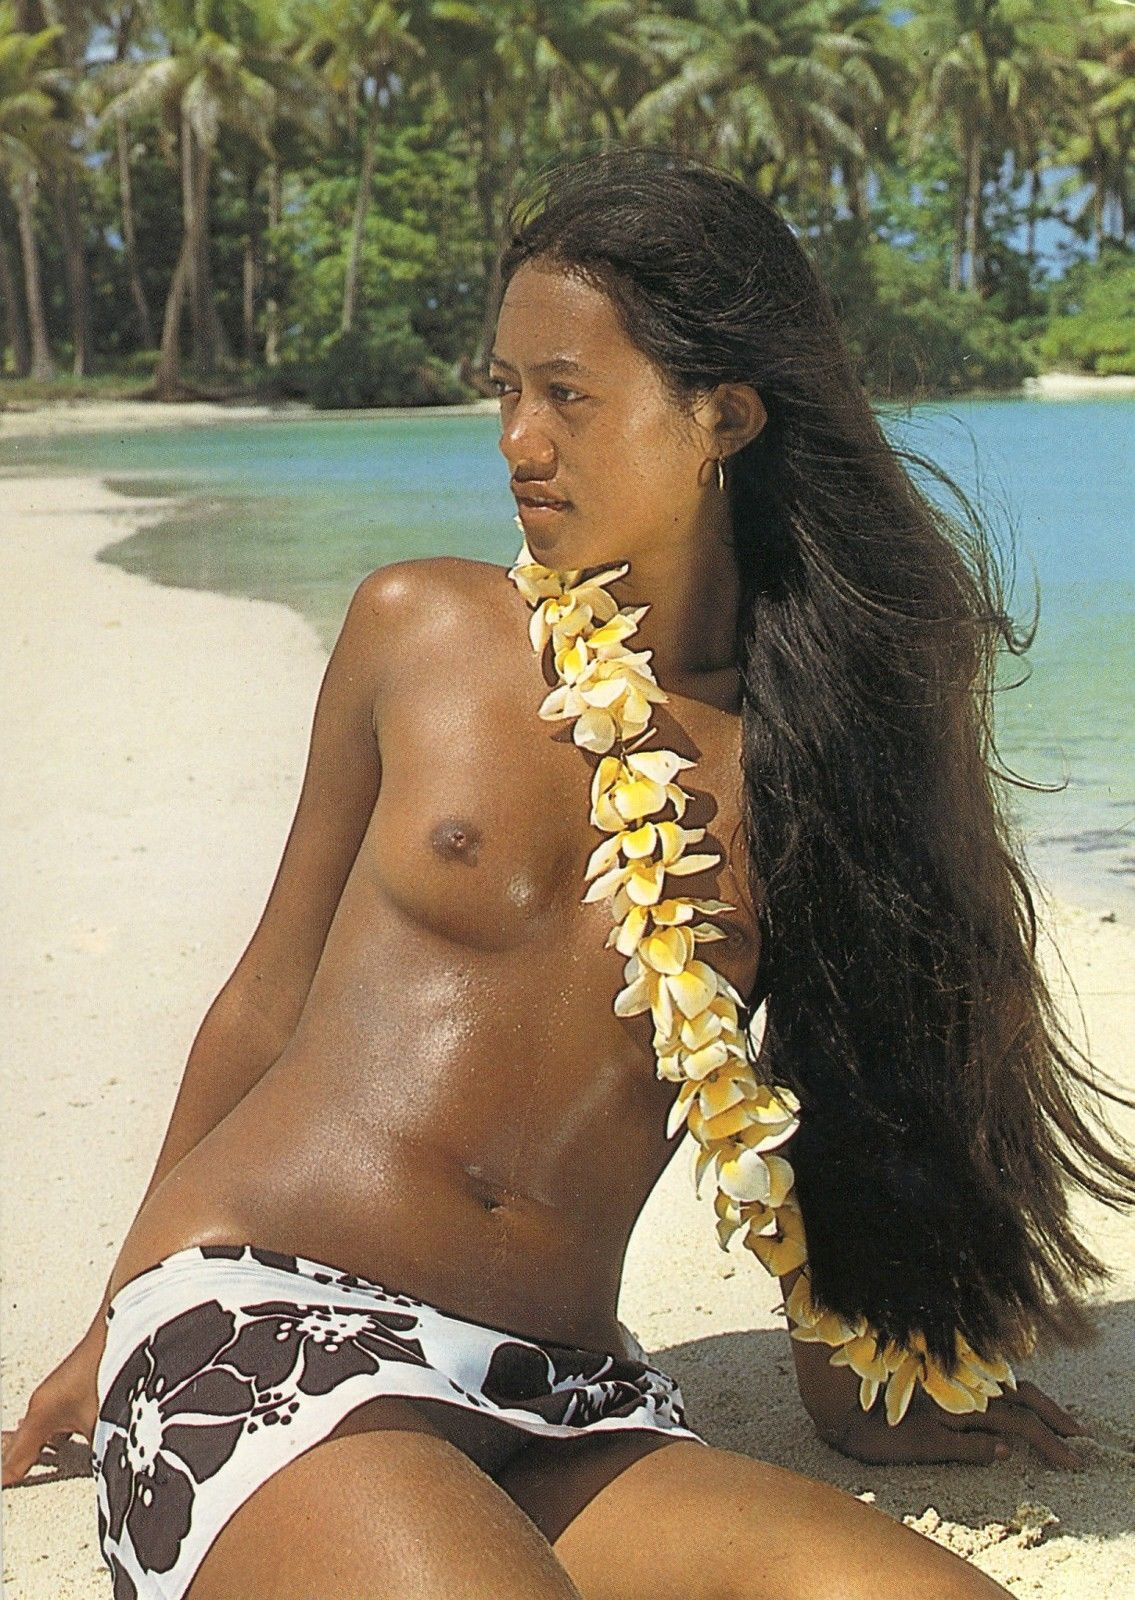 Stripping nude in this hot hawaiian weather